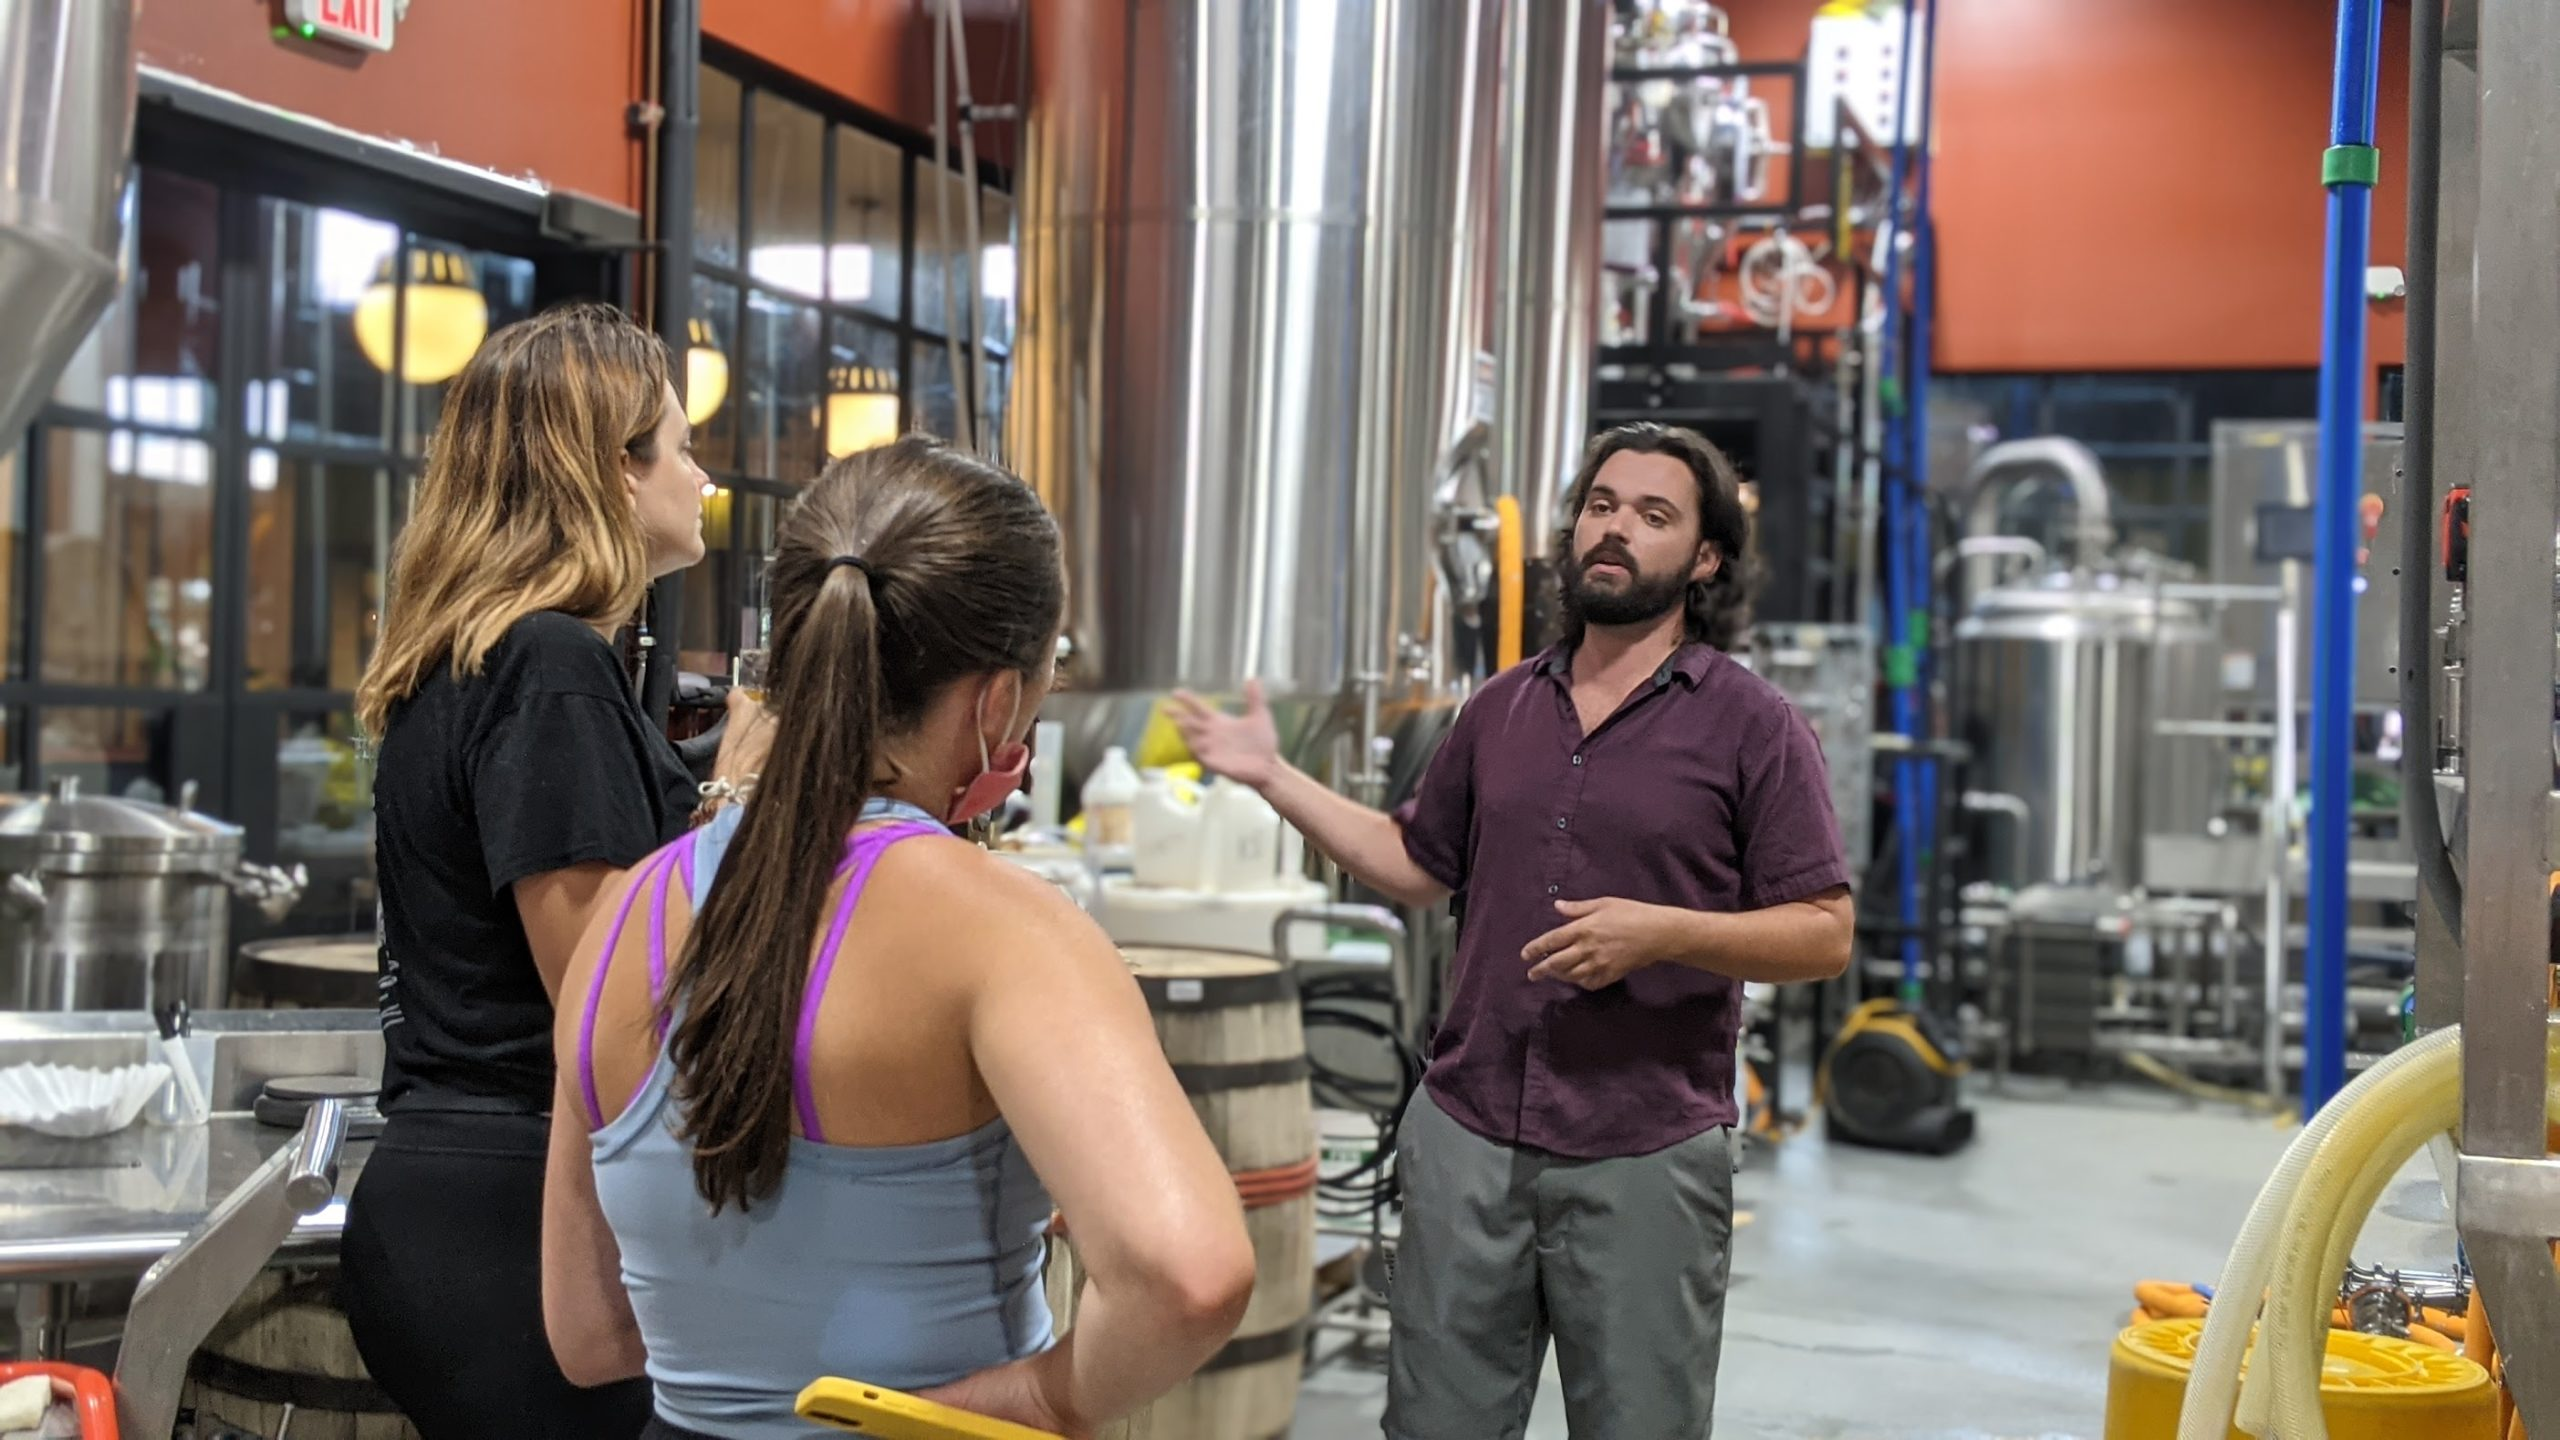 Photo of Brianna and Trista from behind in a brewery, with a brewer giving a tour.